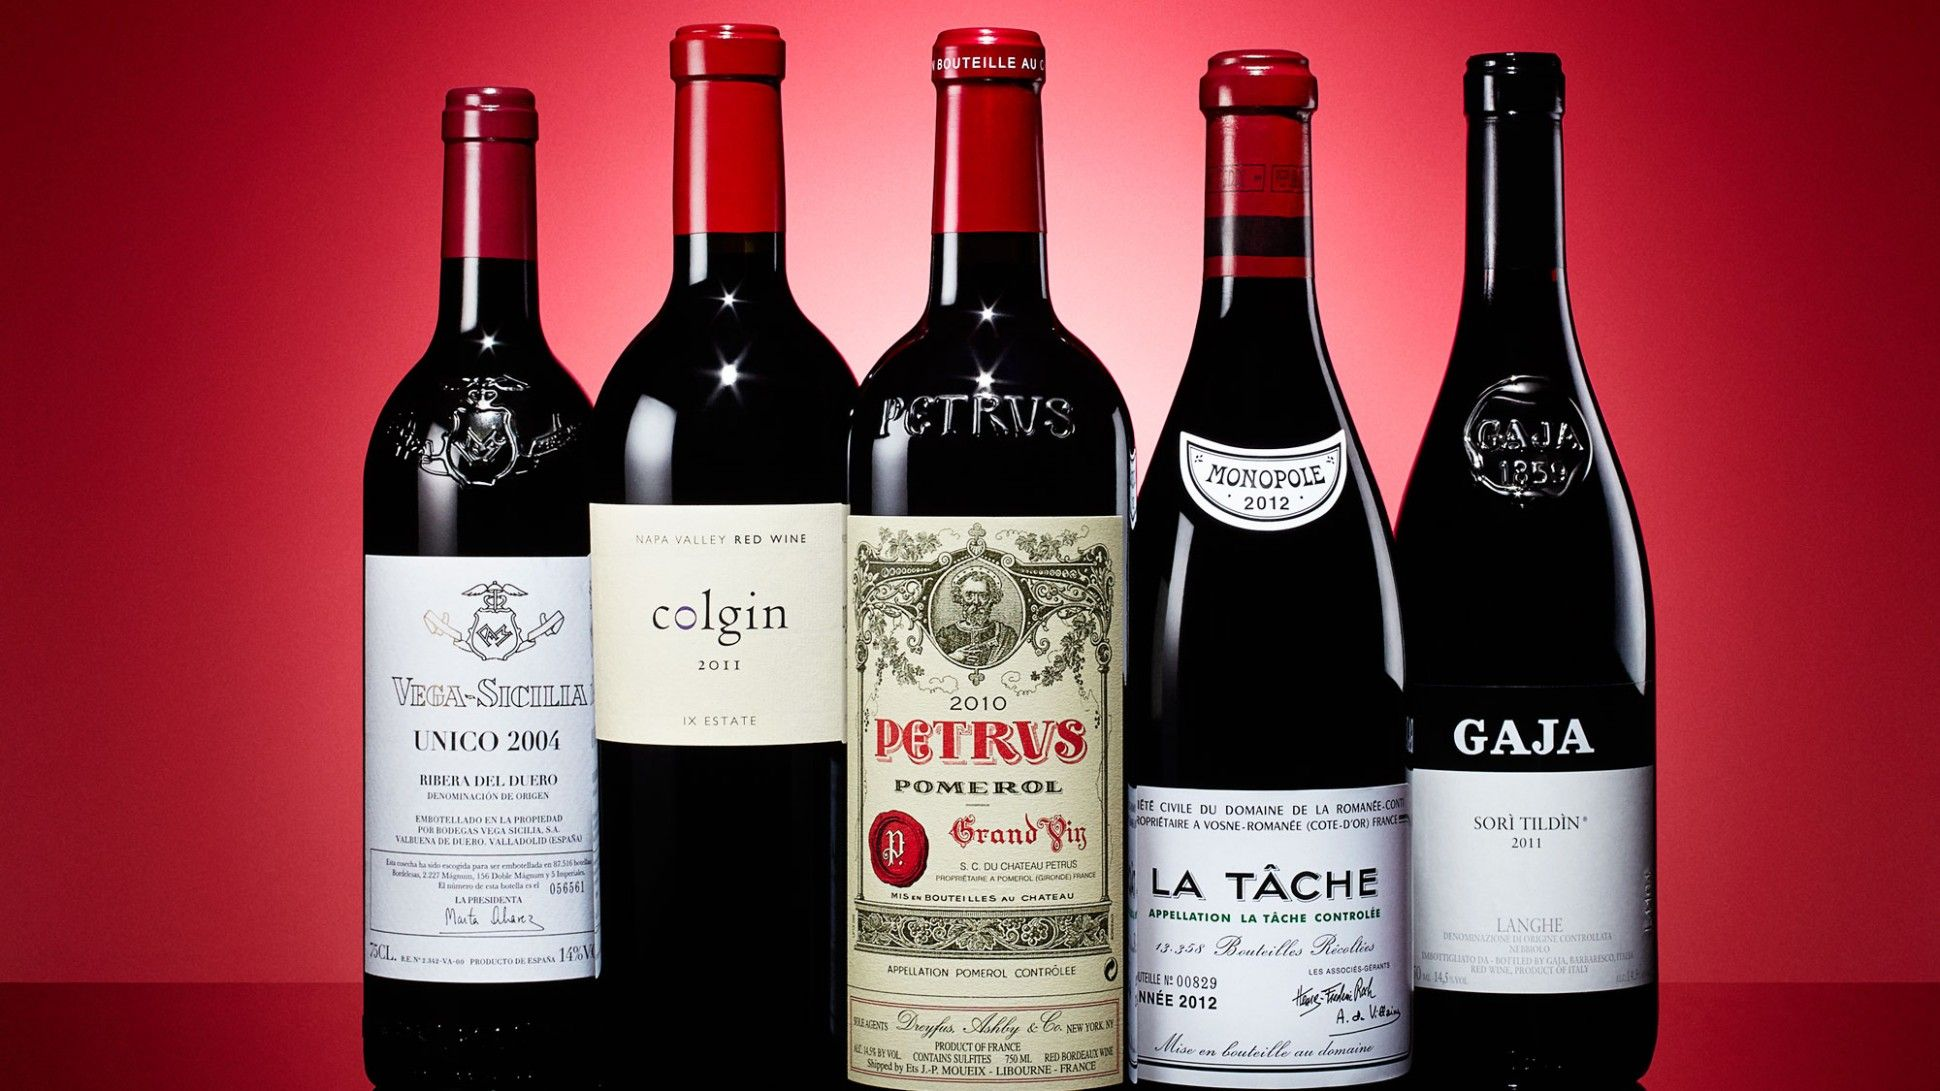 Seal The Deal Big Red Wines Red Wine Wine And Spirits Wines